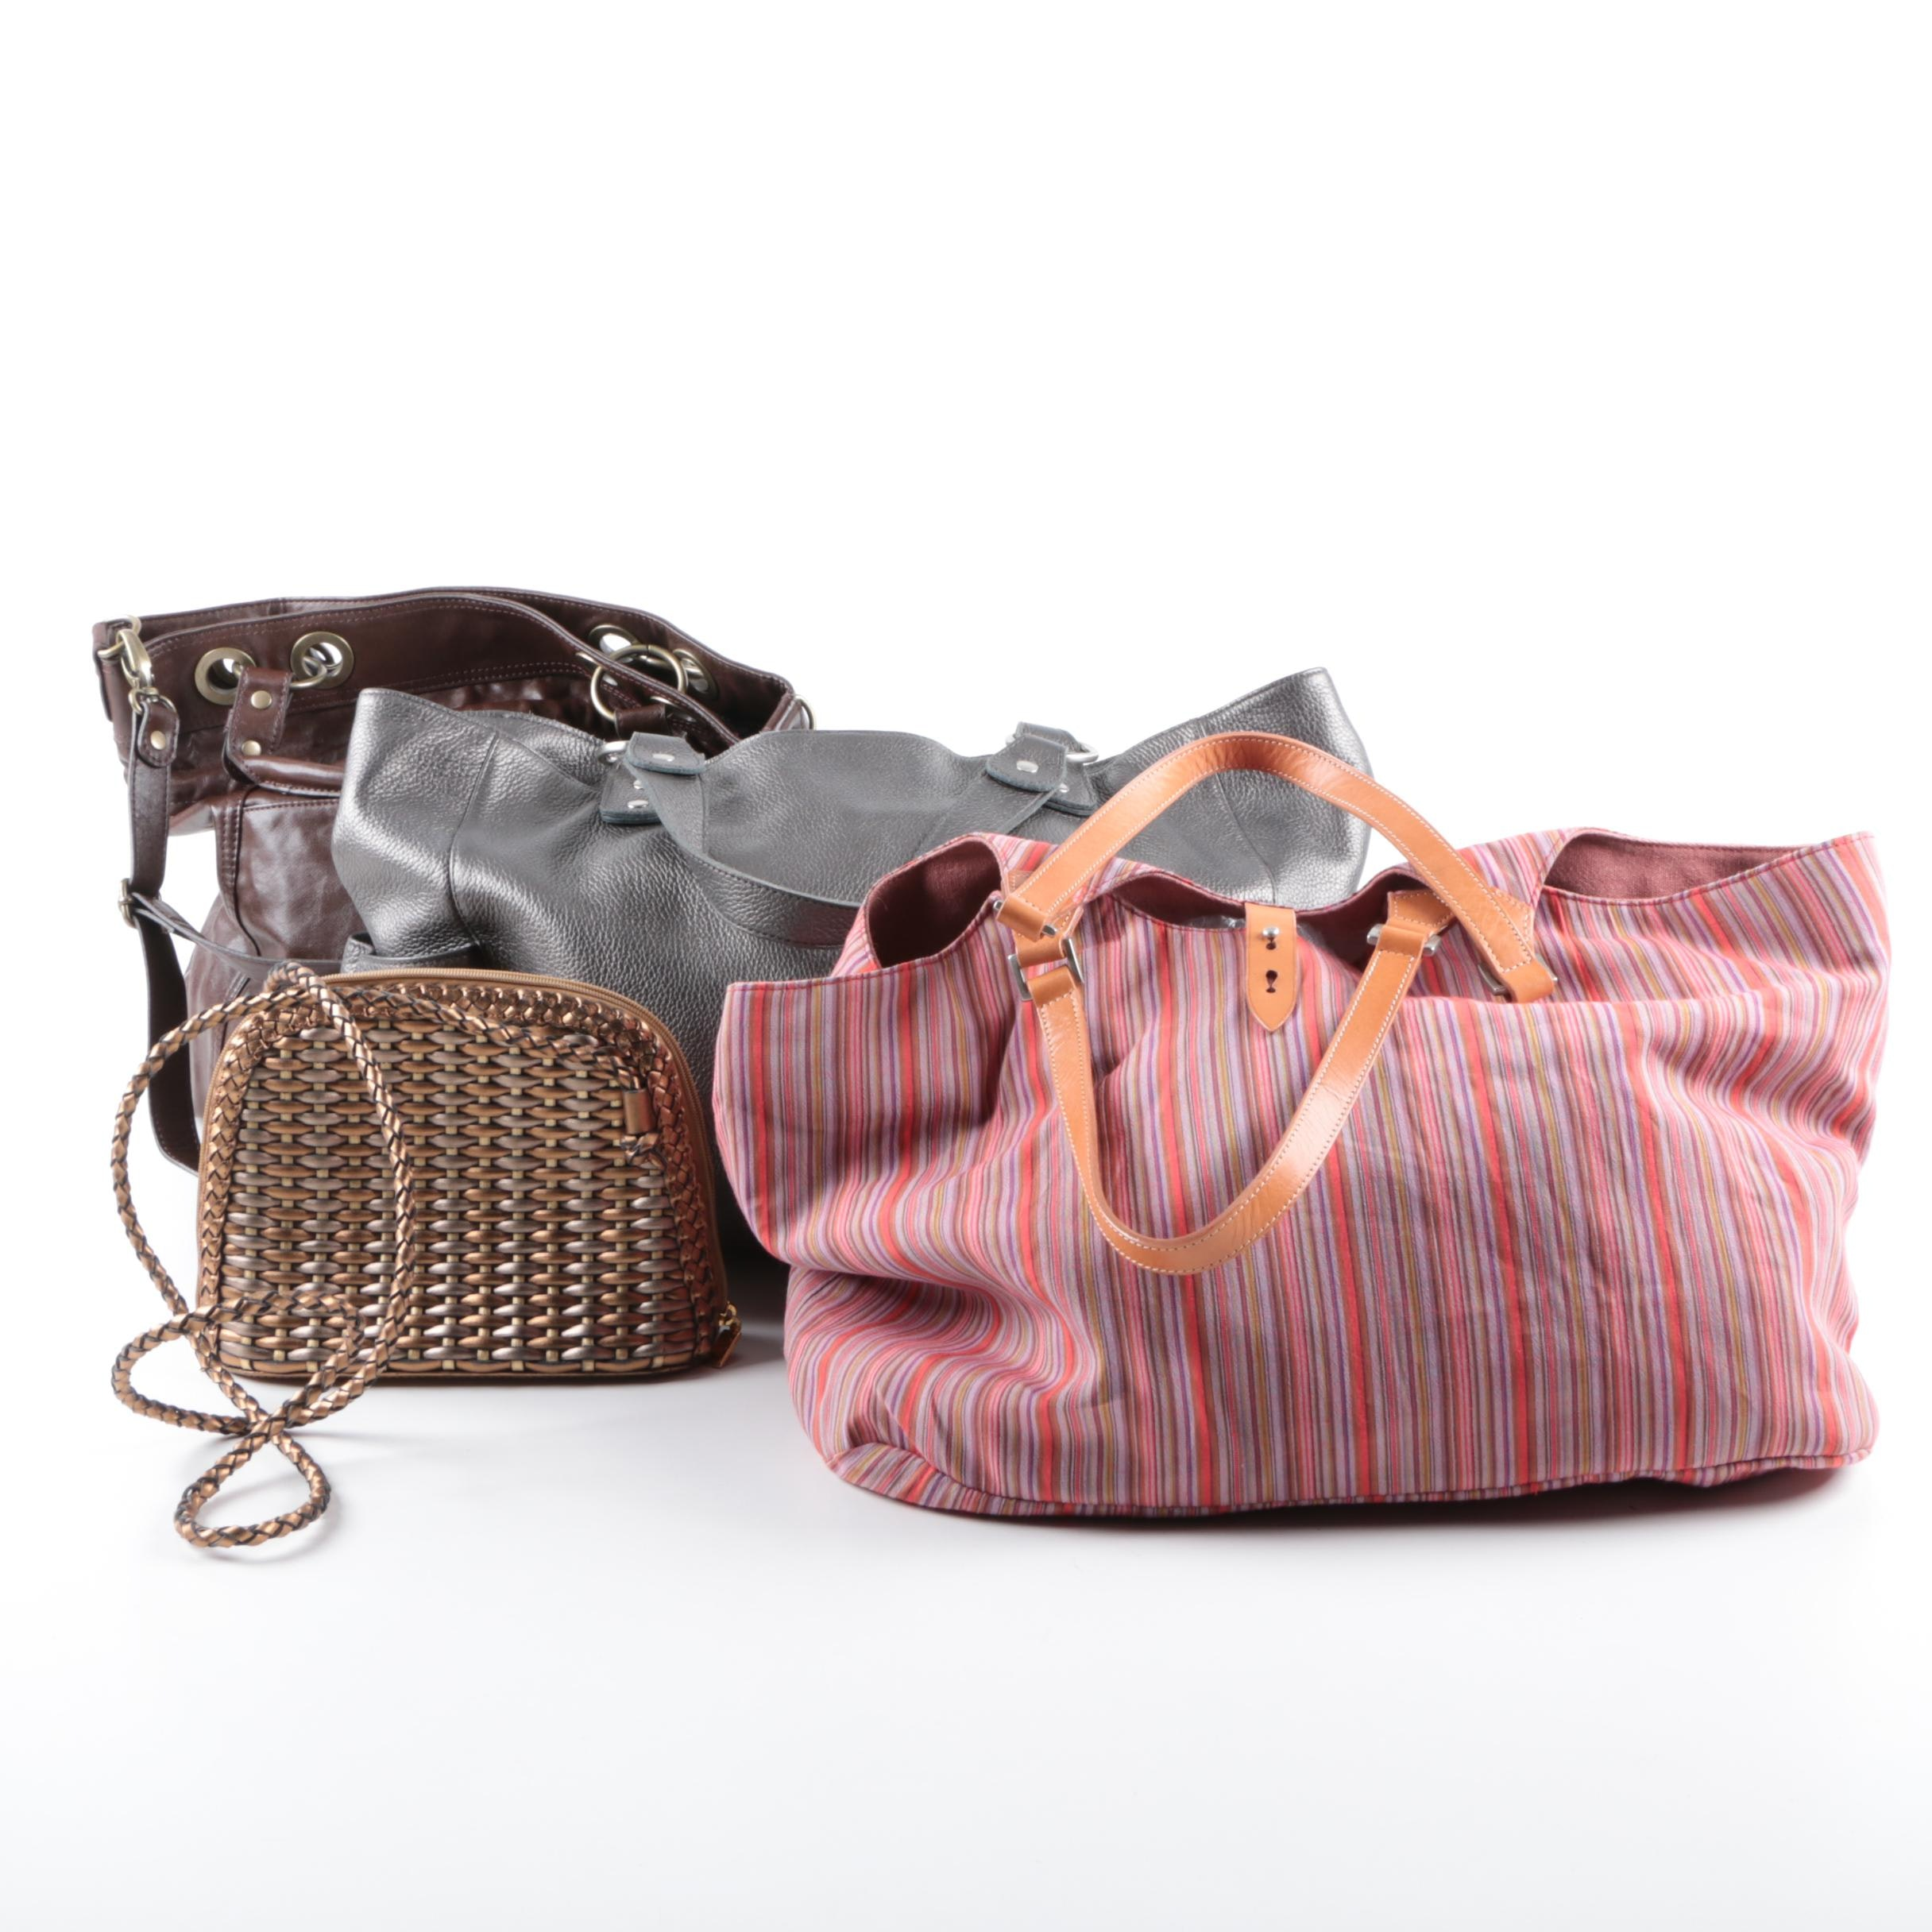 Leather and Fabric Tote Handbags and a Shoulder Bag